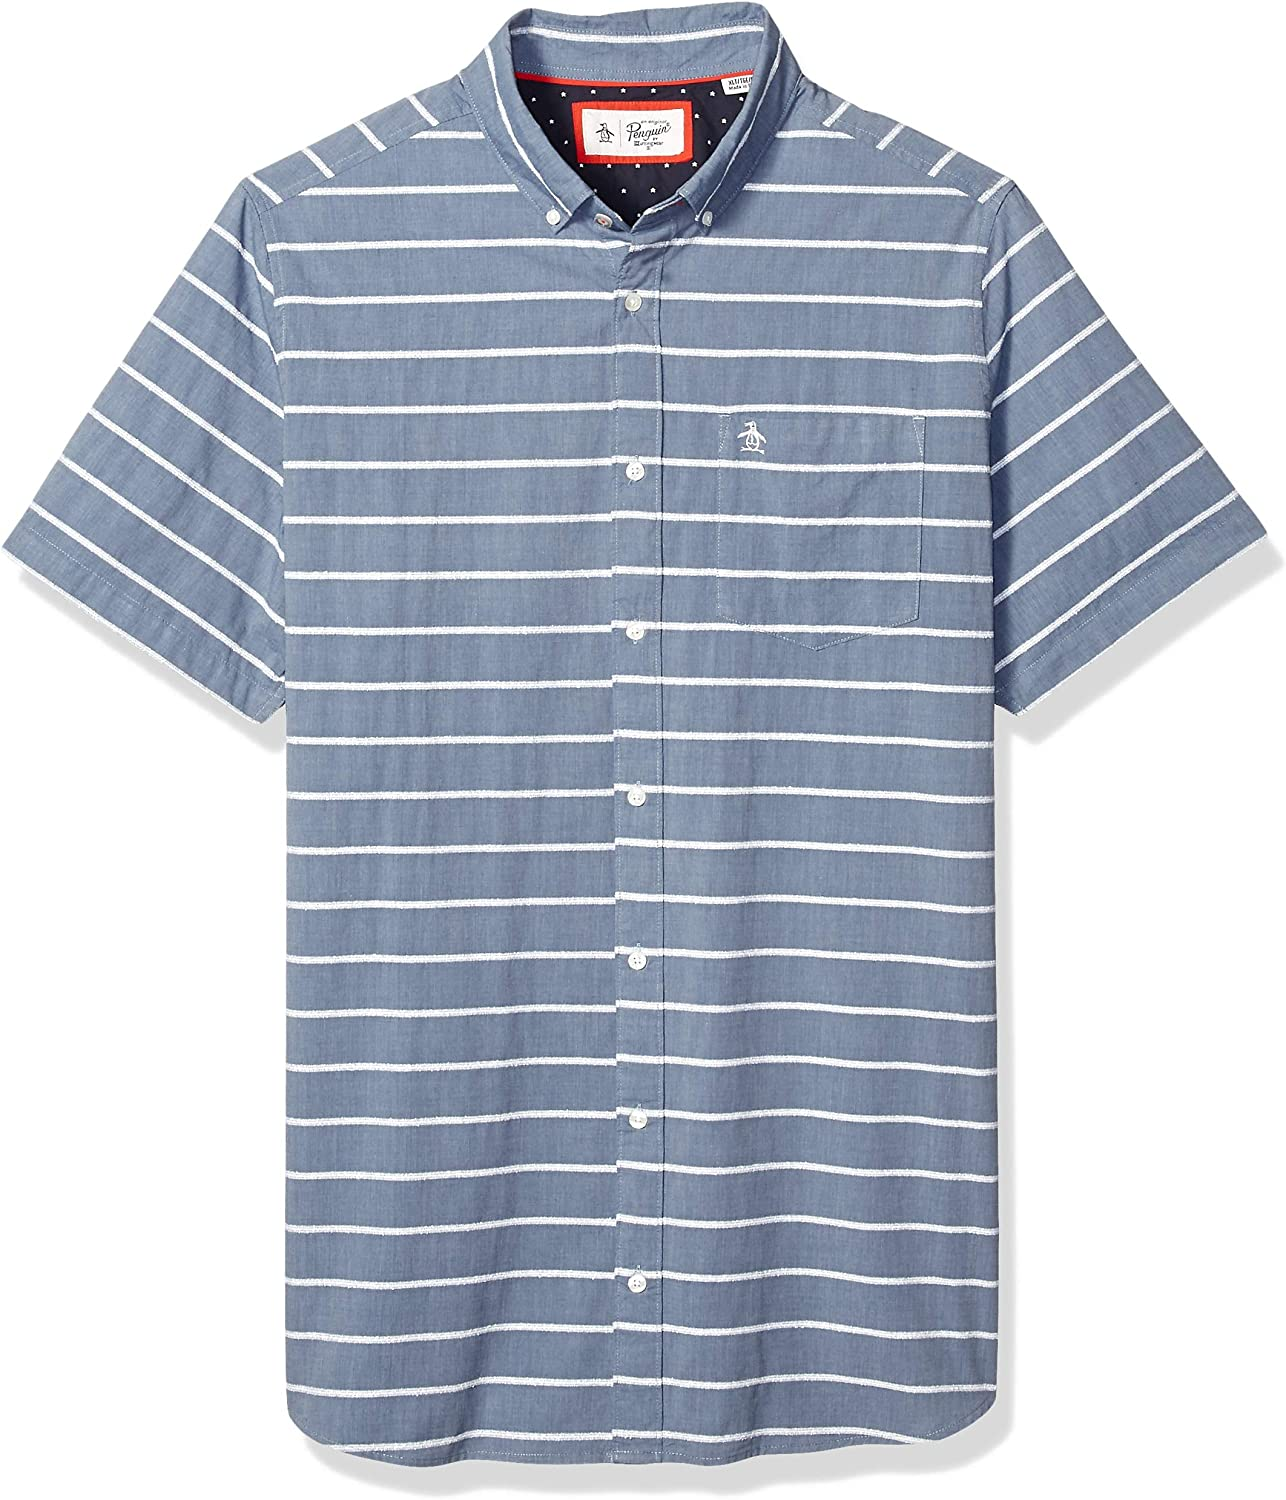 Original Penguin Mens Big and Tall Short Sleeve Stripe Button Down Shirt